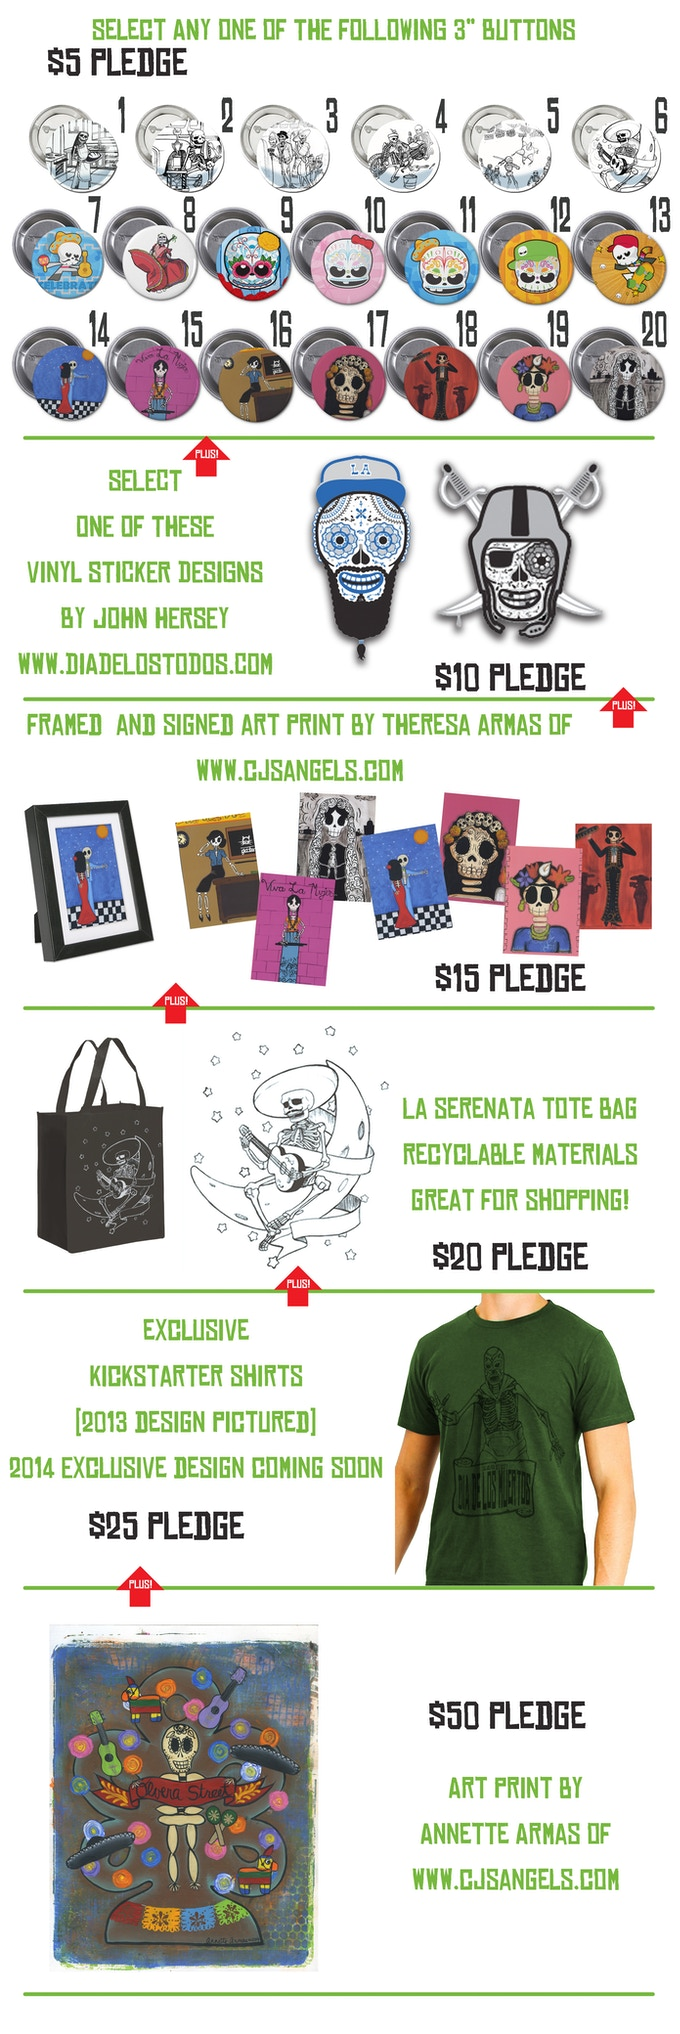 2014 Rewards! See what you get for helping us out!